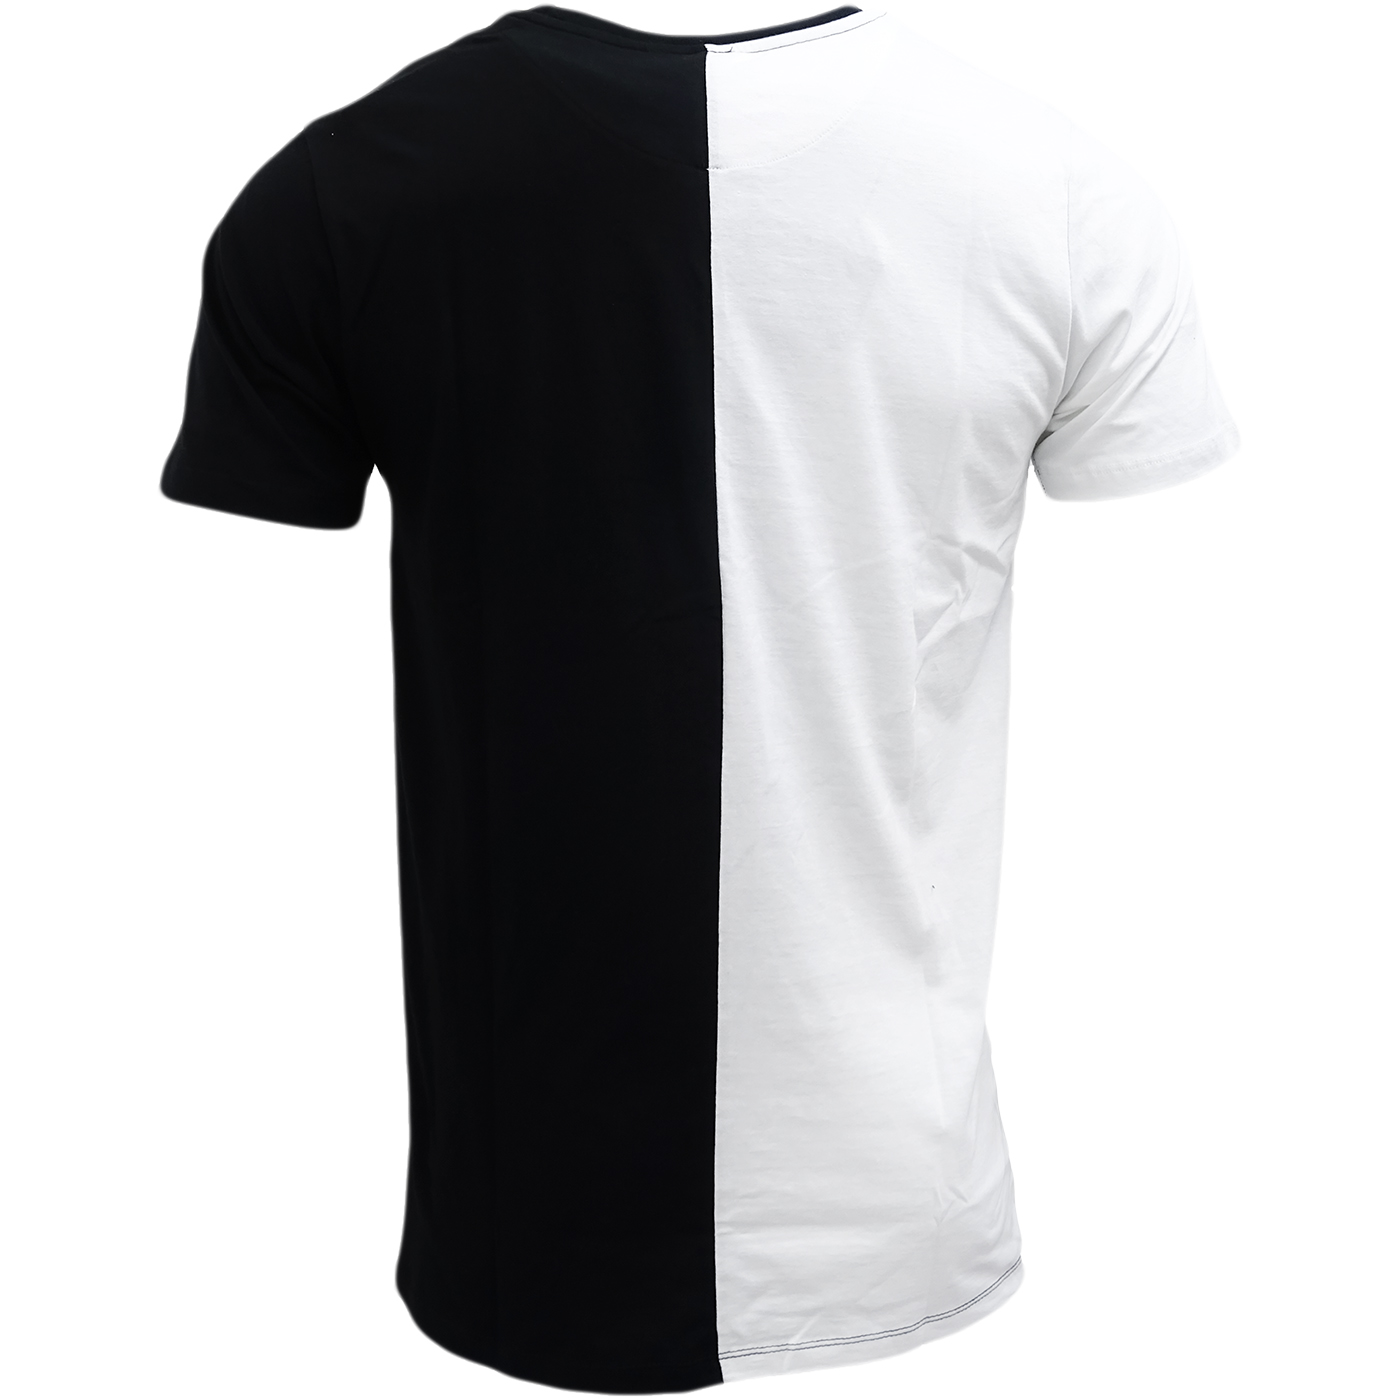 Hype White / Black Half White / Half Black Split T-Shirt - Two ...